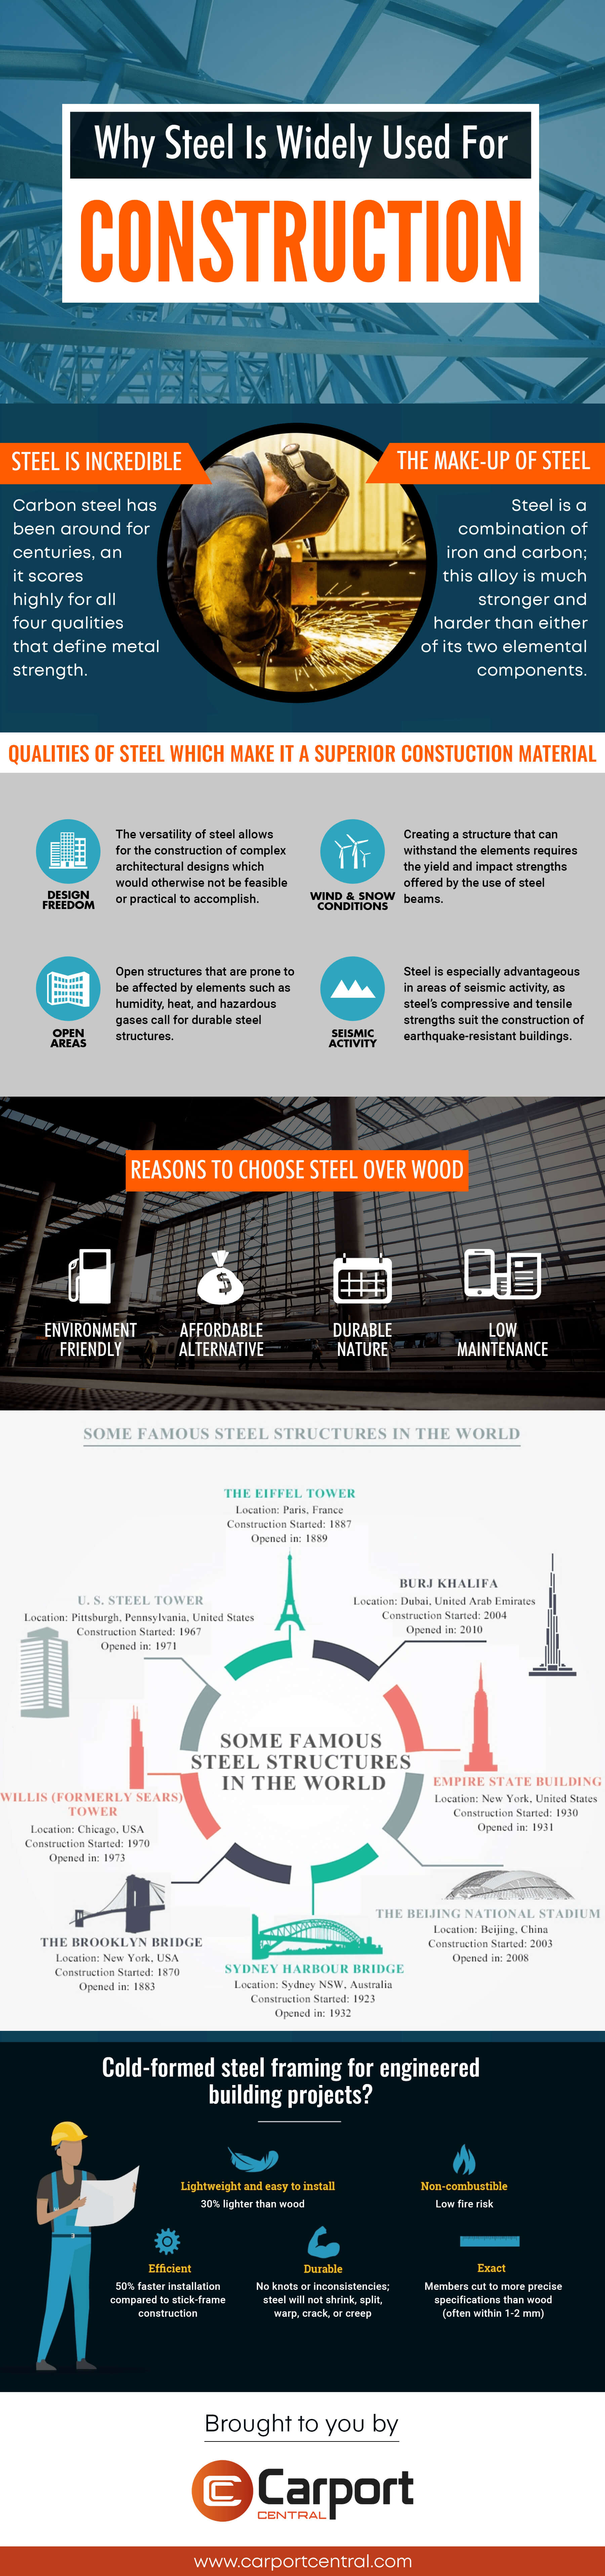 Why-Steel-is-Widely-Used-for-Construction-infographic-plaza